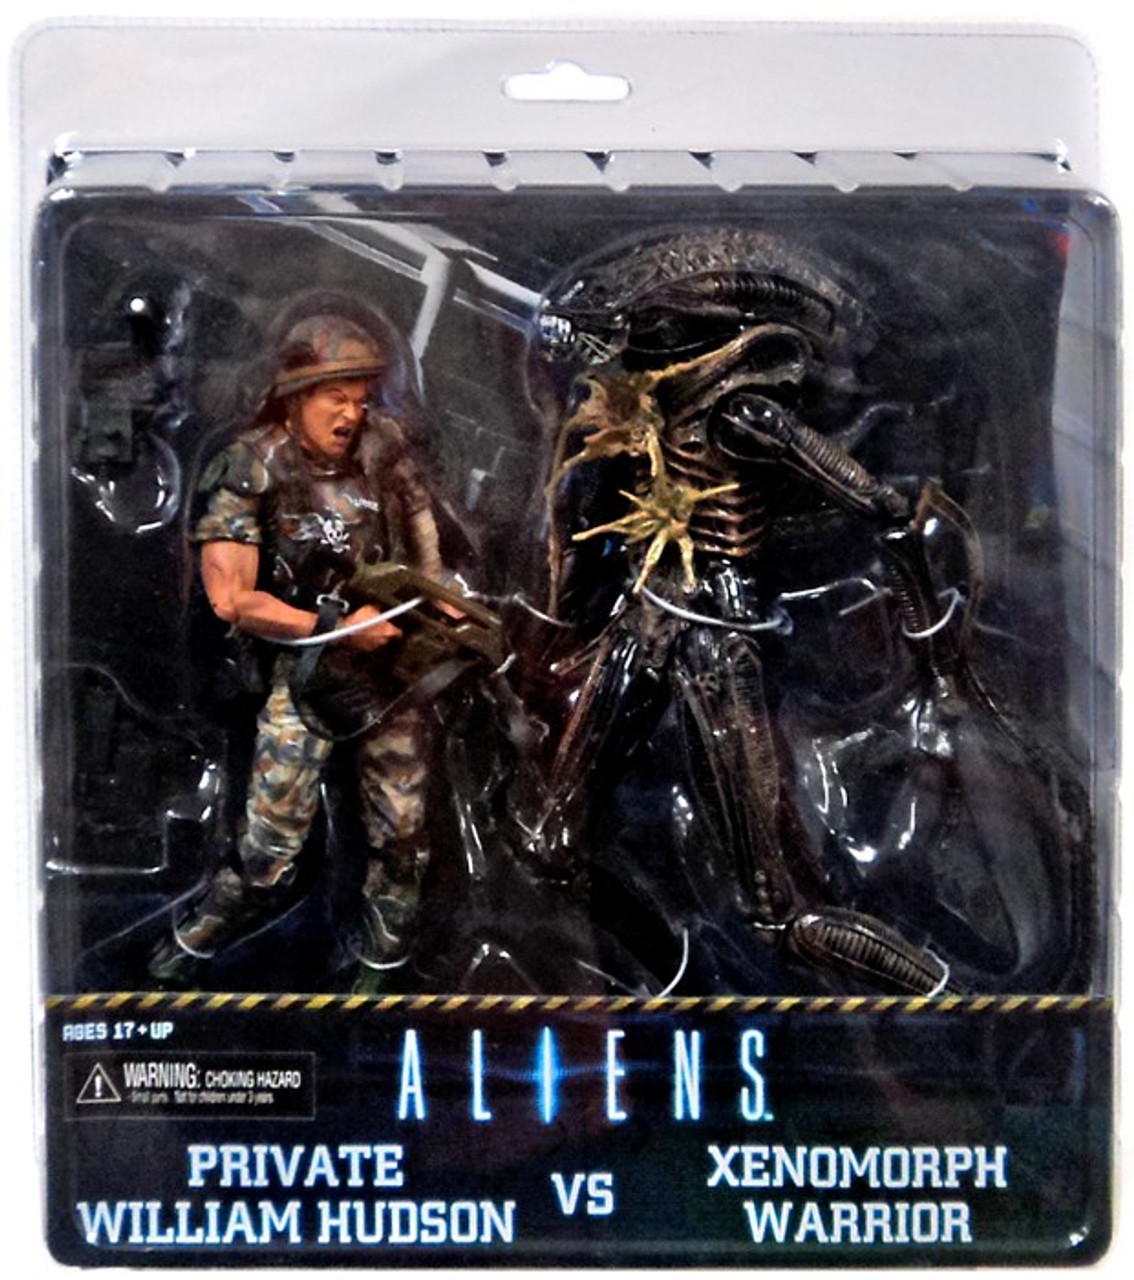 NECA Aliens Private William Hudson vs. Xenomorph Warrior Action Figure 2-Pack